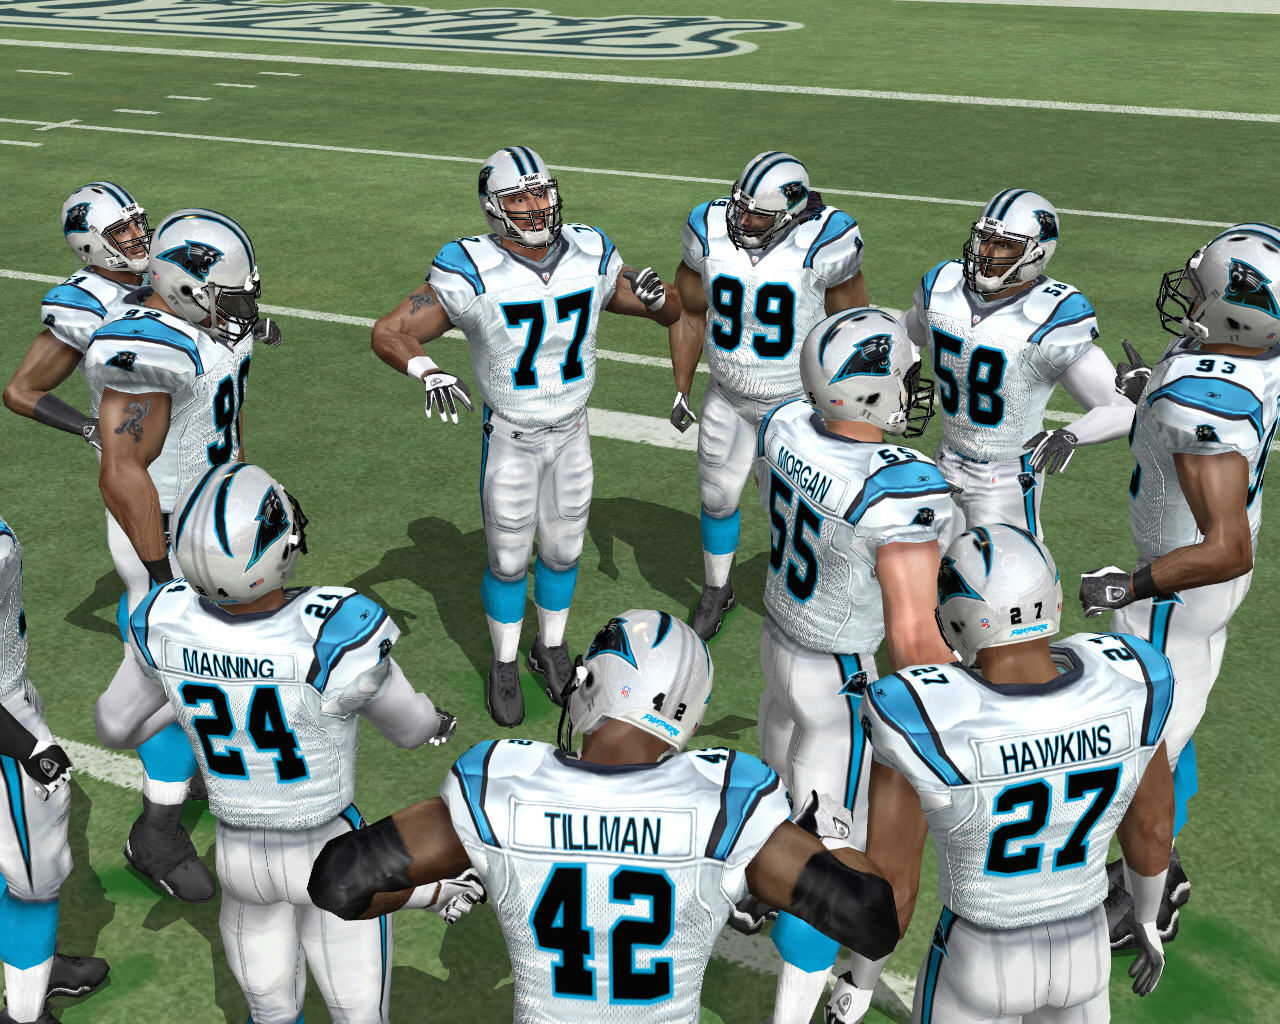 Madden NFL 2005 Windows Team getting ready for the opening kick.